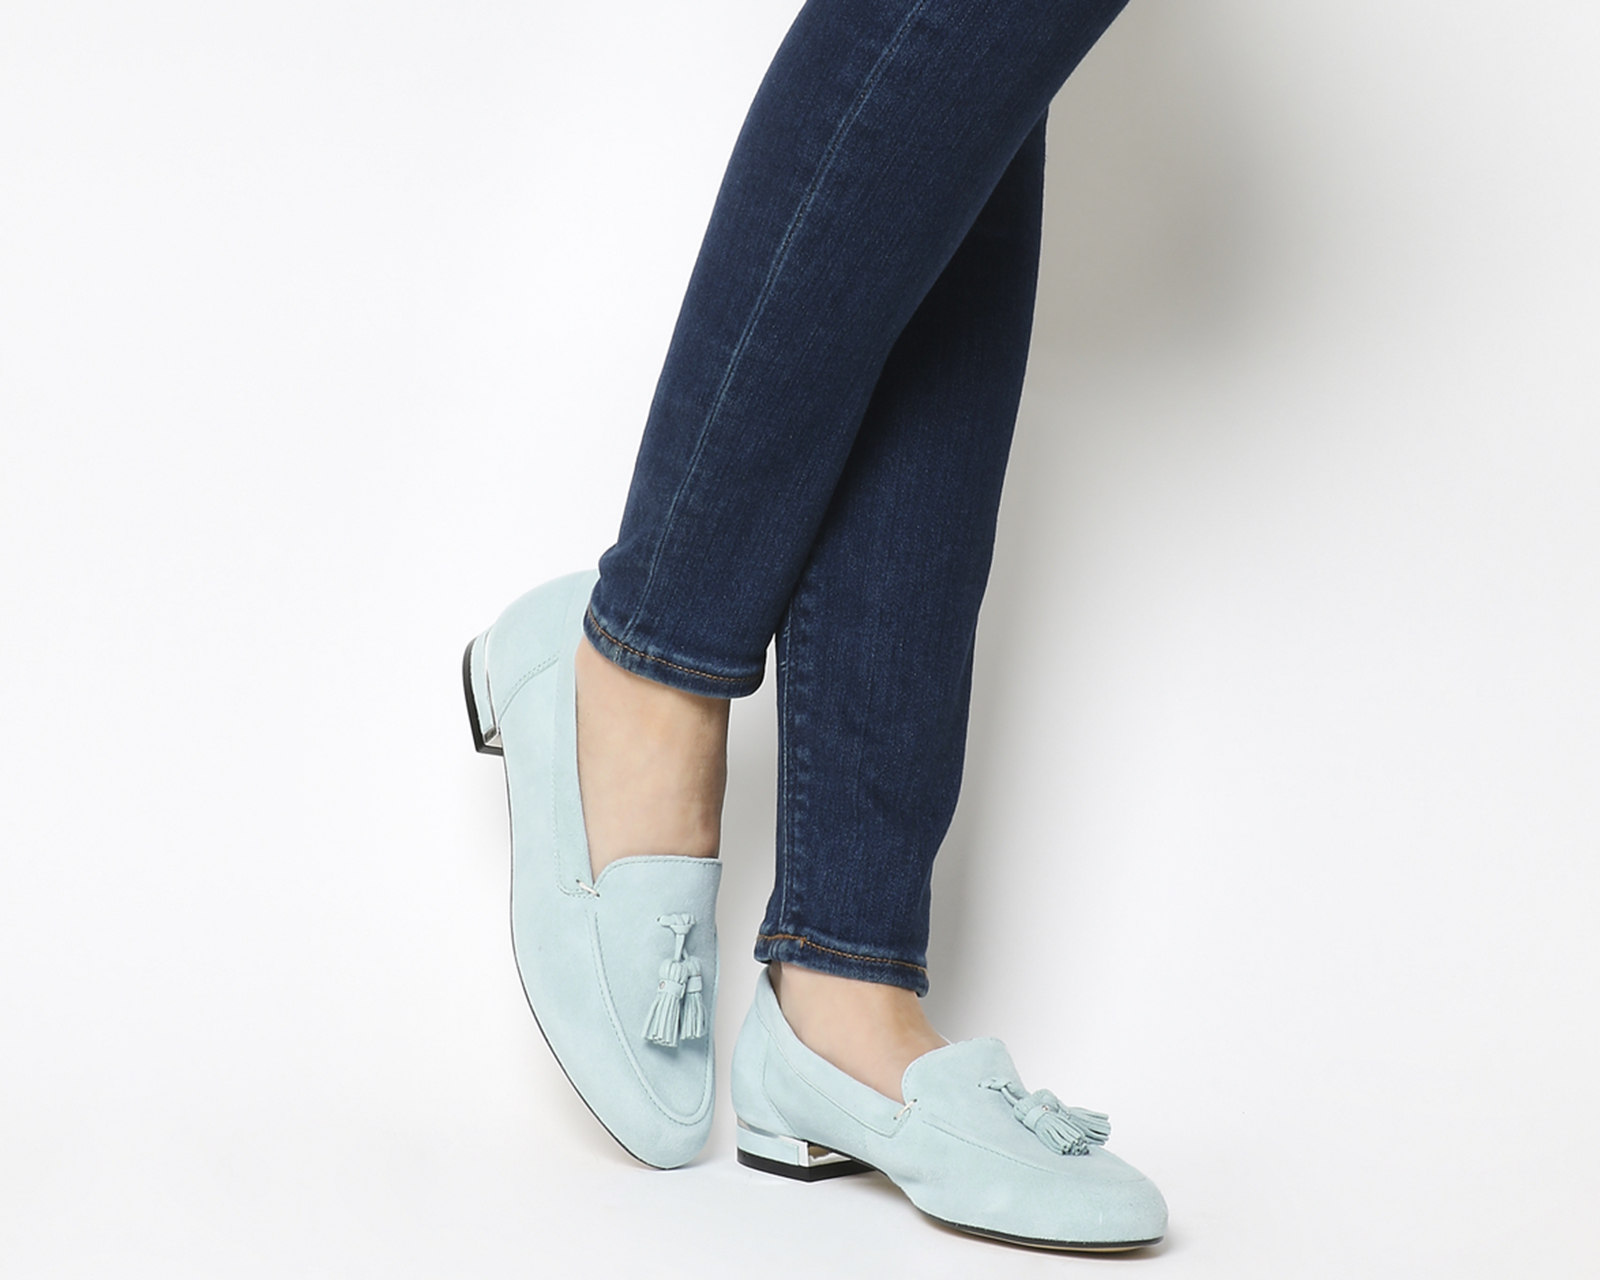 7285c06369d Sentinel Womens Office Blue Suede Slip on Loafers Size UK 7  Ex-Display